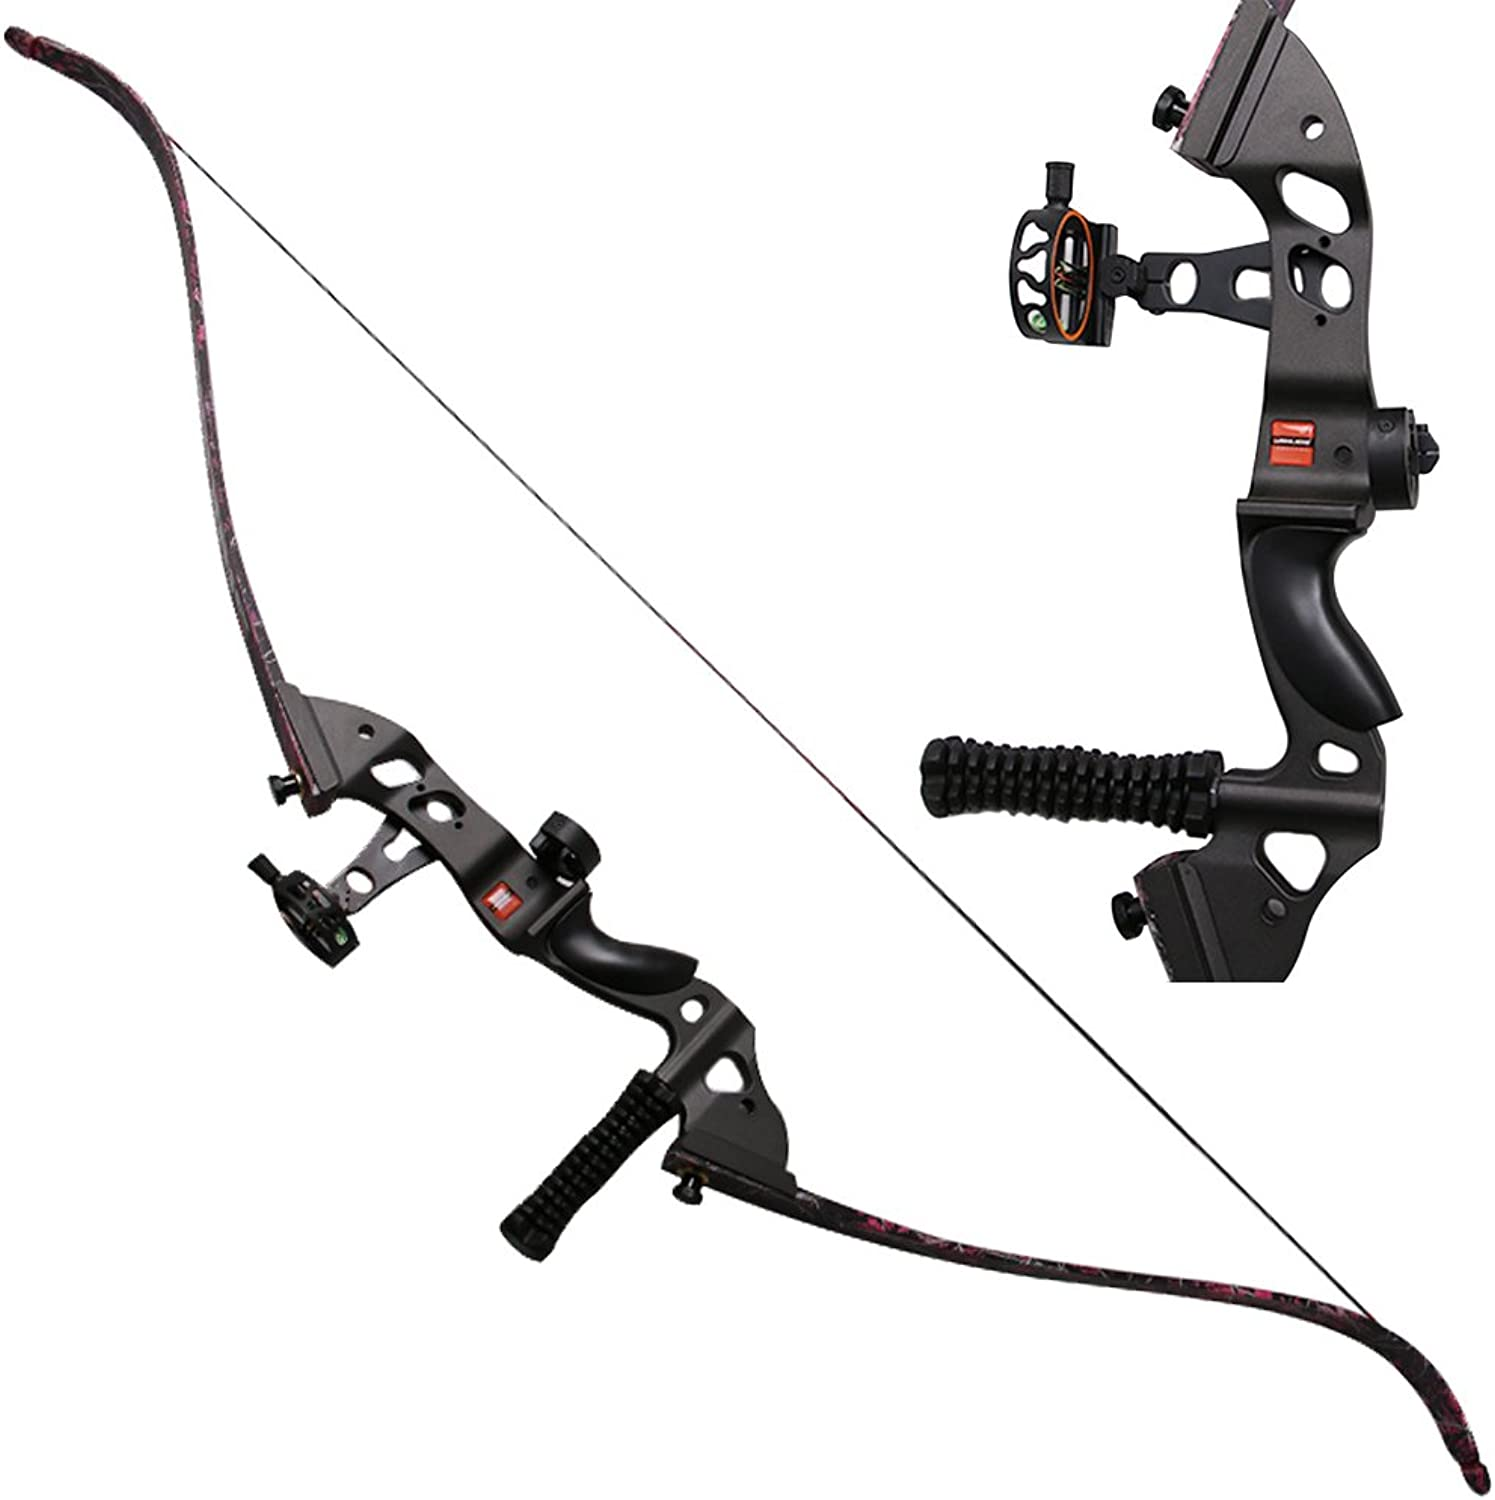 HBG Archery 60'' Takedown Recurve Bow Alloy Right Handed Hunting Long Bow Set Included Bow Sight,Arrow Rest,Stabilizer 35-55lbs